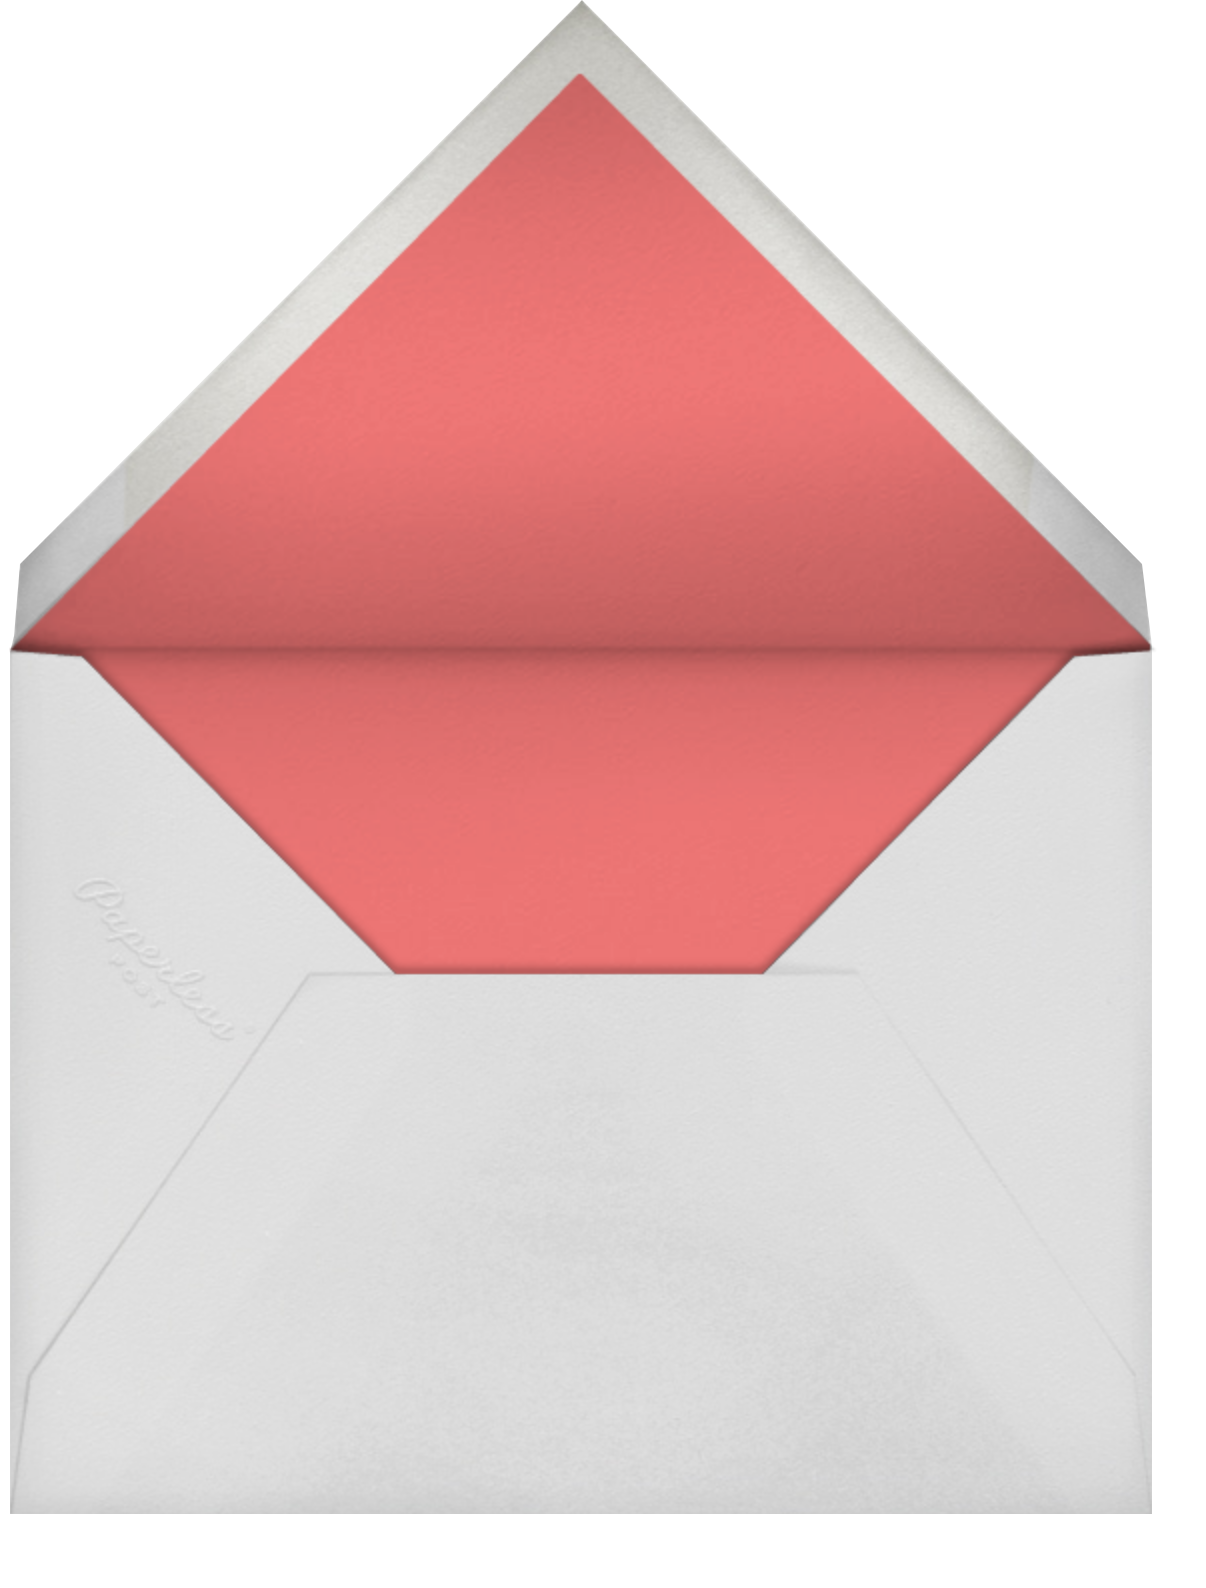 Palmier III - Gold  - Paperless Post - Cocktail party - envelope back